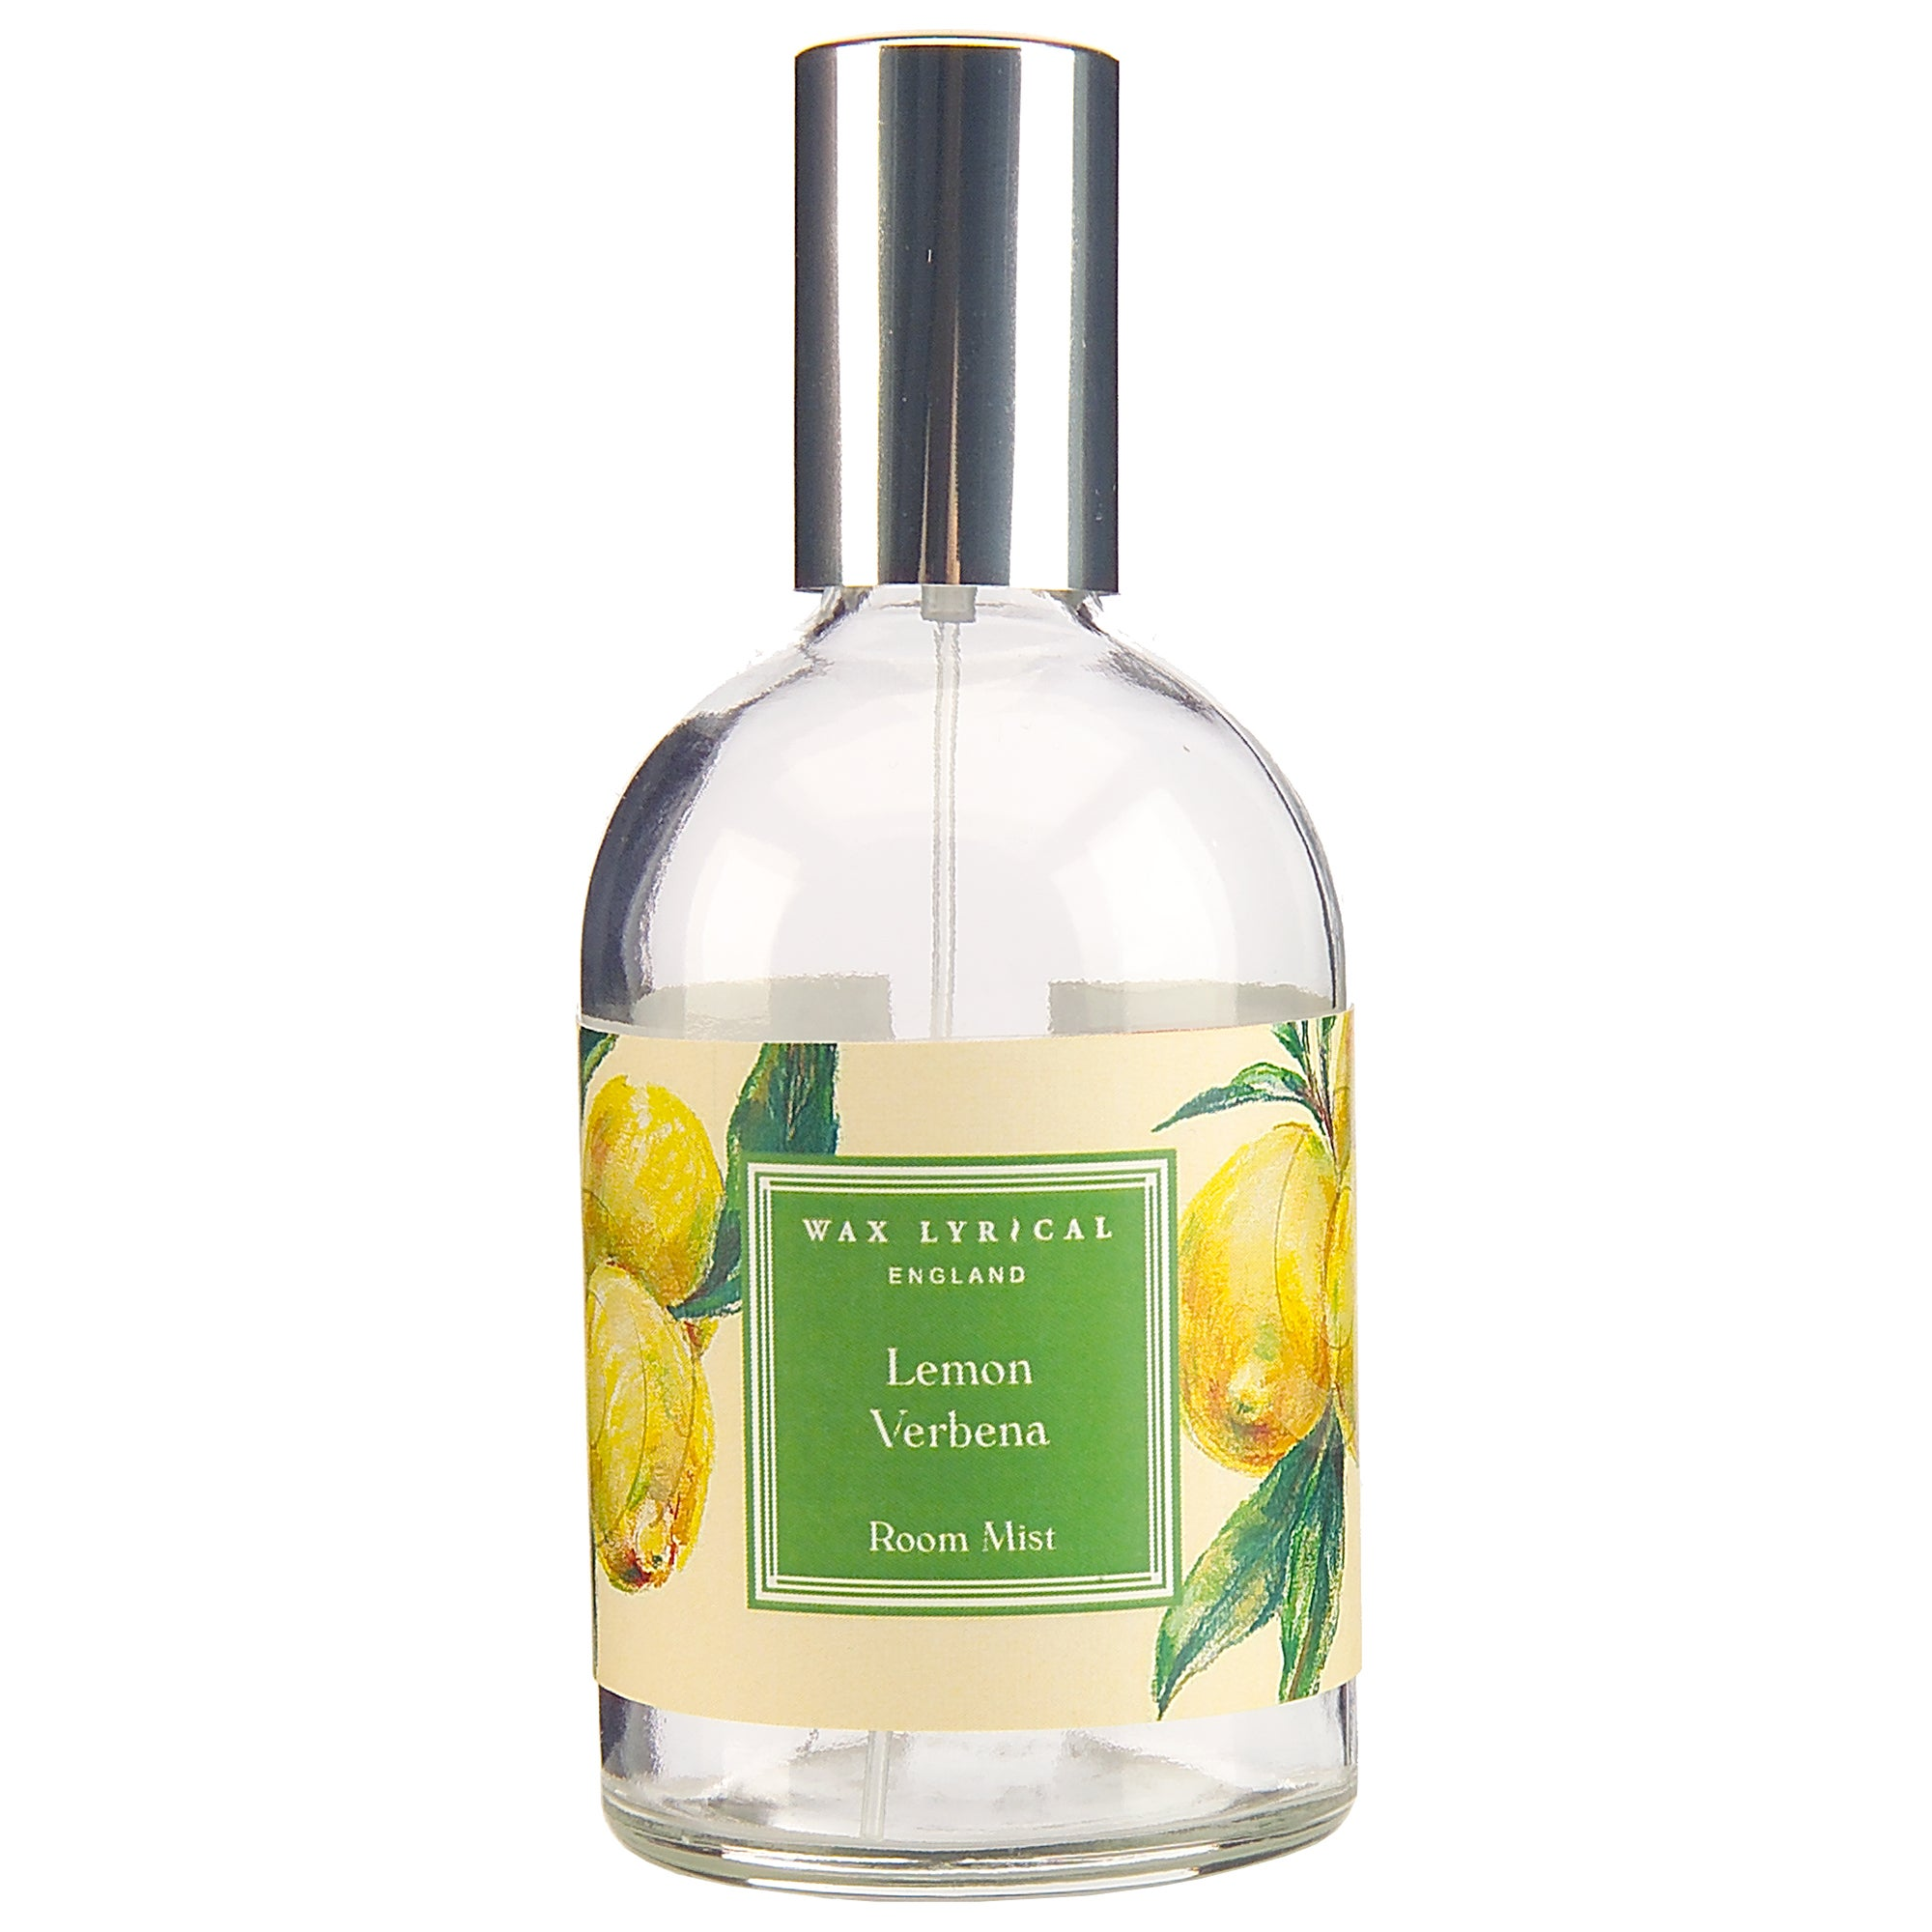 Wax Lyrical Lemon Verbena Room Mist